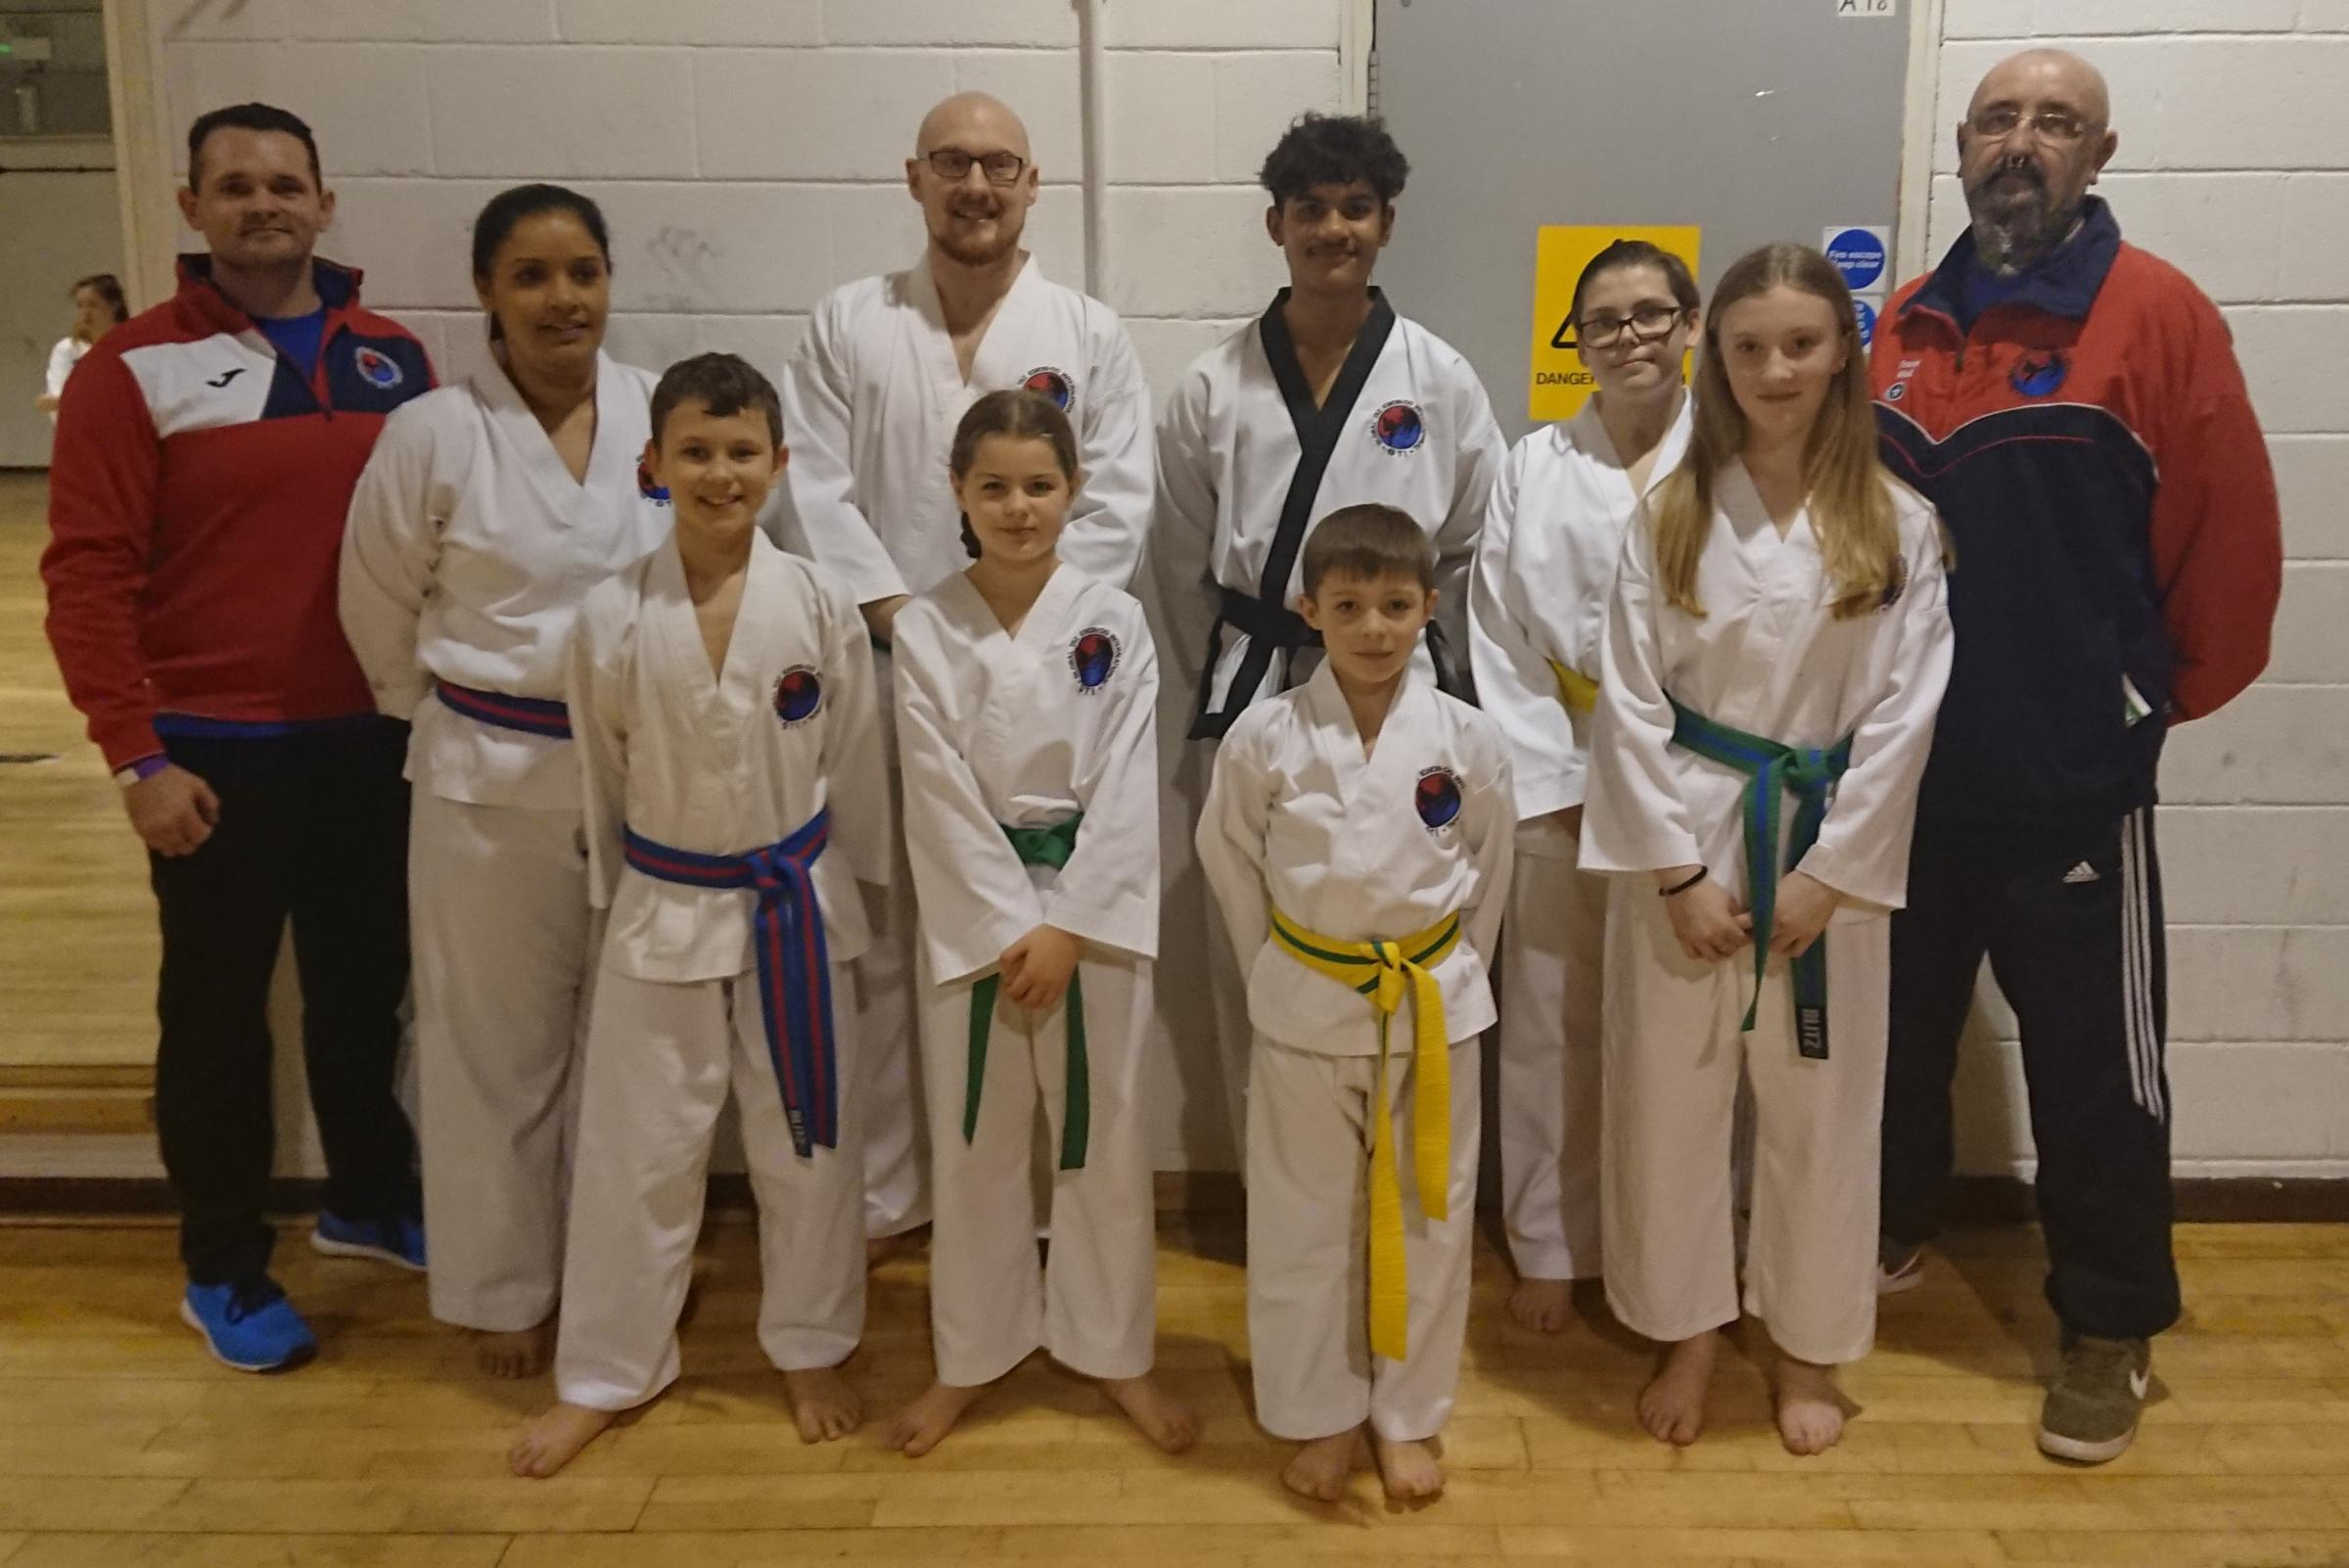 L-R: John Newman (Instructor), Christine O'Bey, Harry Chase, Richard Lane, Jasmine Roux-Nel, Cody O'Bey, Oscar Cronin, Lee Barnard, Imogen Lane, Frank Wall (Coach).